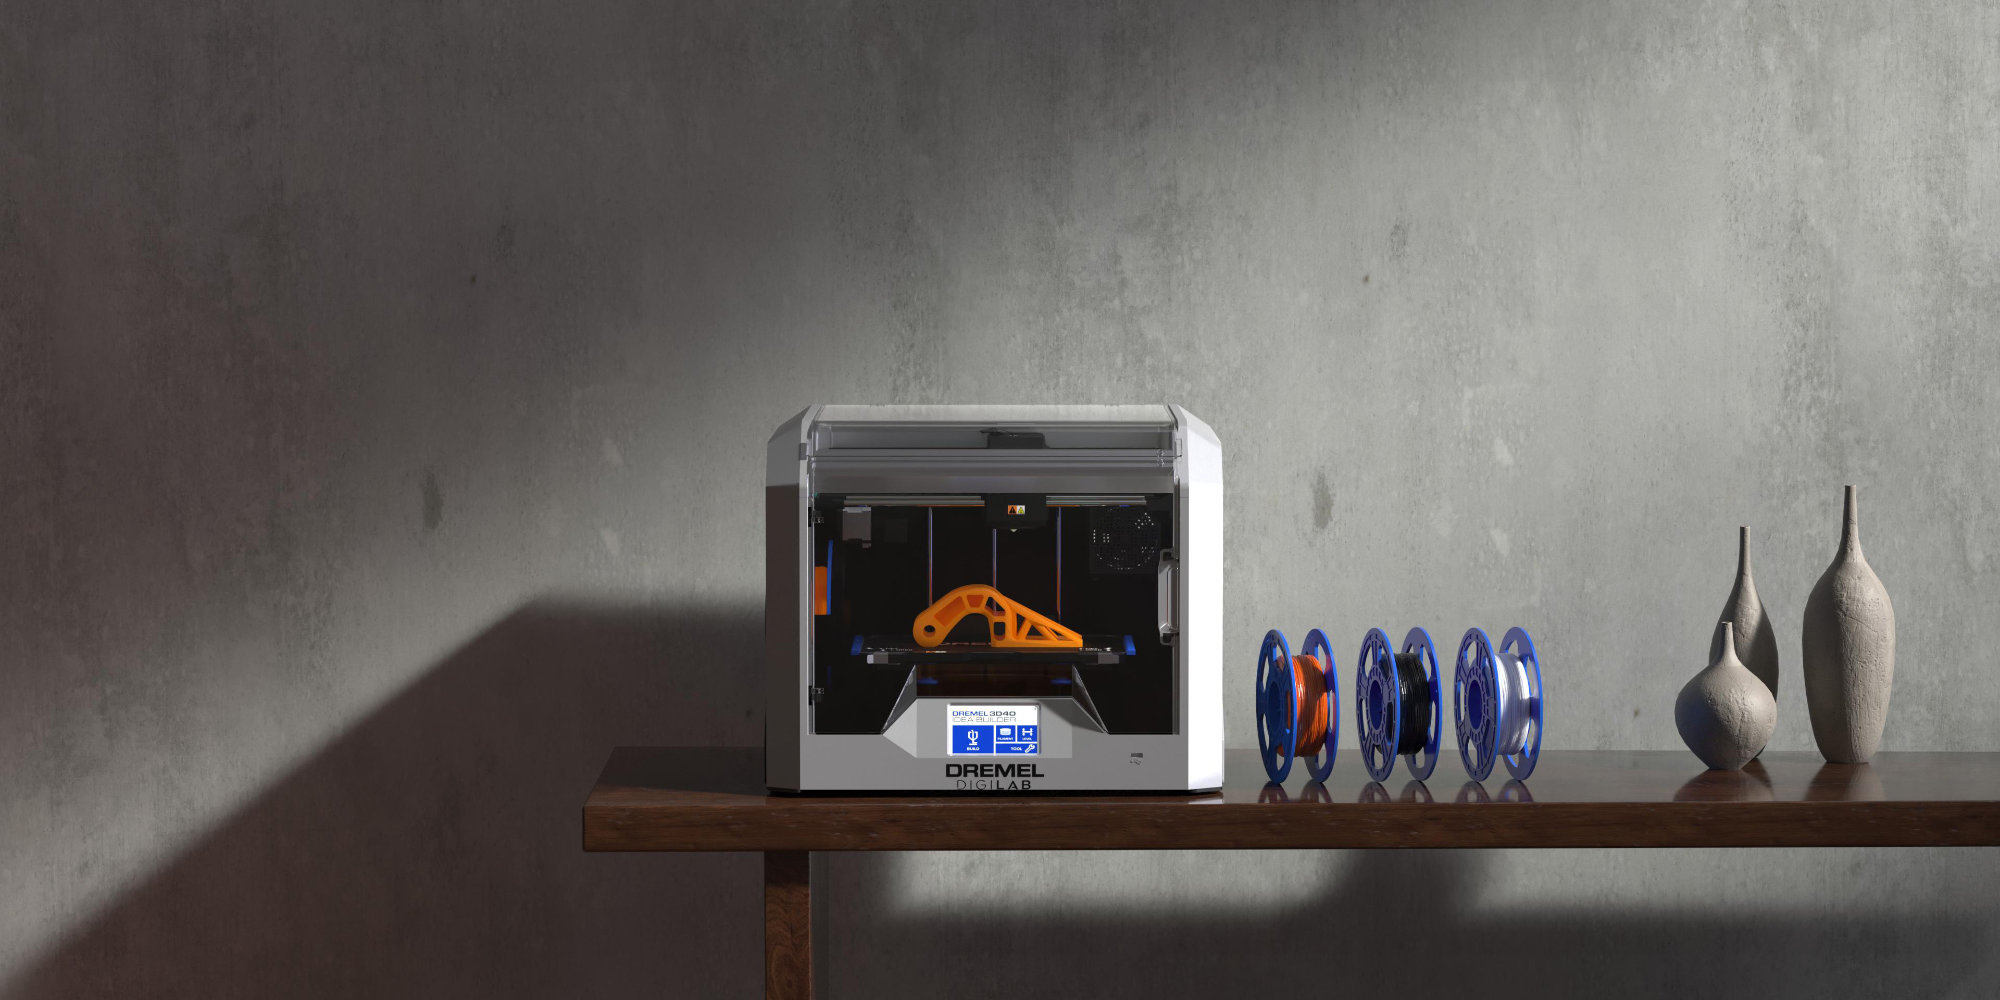 Dremel's latest 3D Printer has a flexible build plate and supports up to 30% faster printing